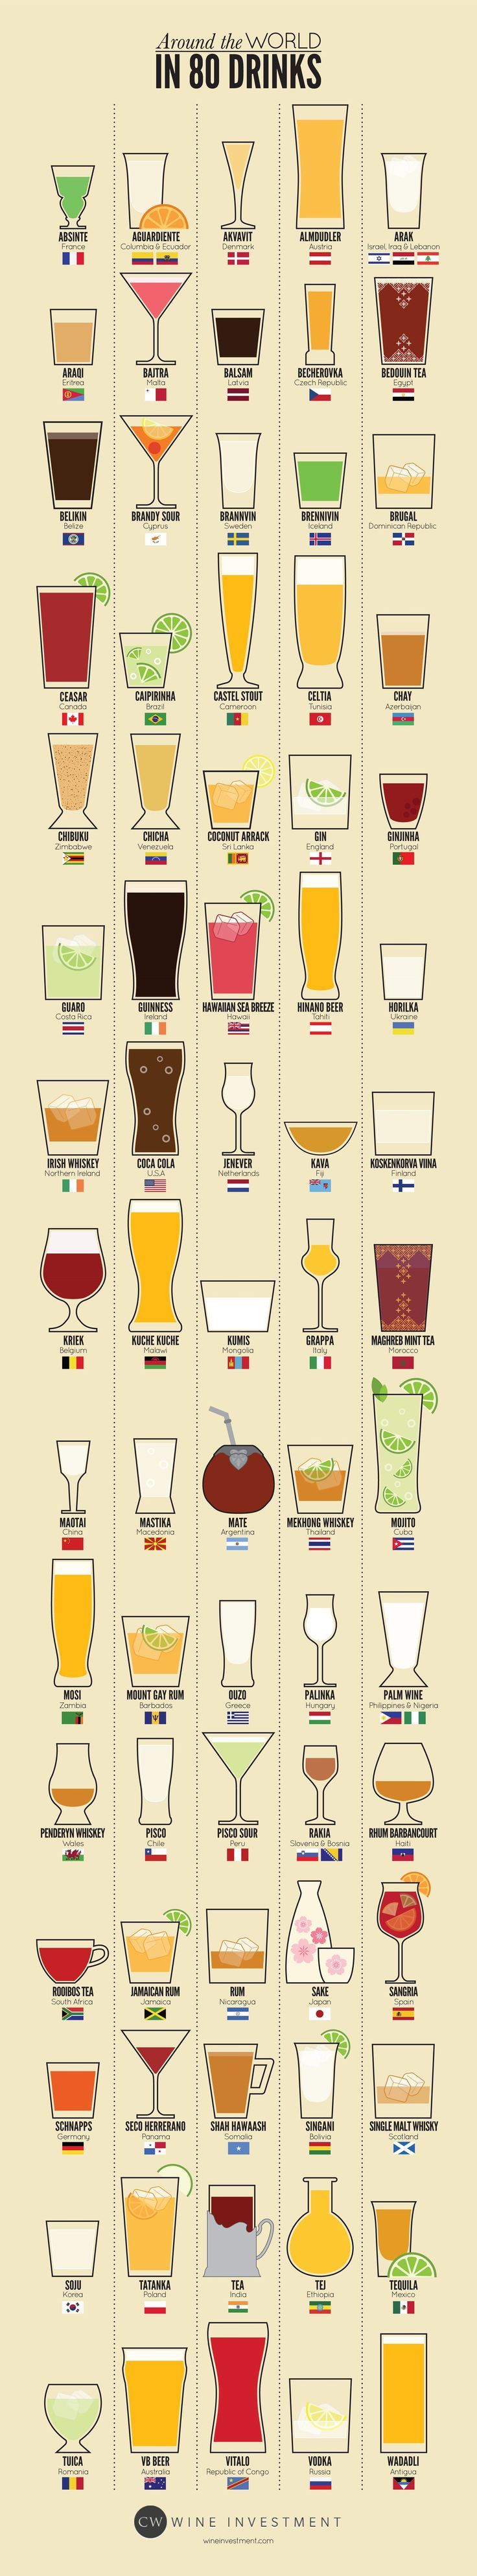 Around The World In 80 Drinks - Fabulous!                                                                                                                                                                                 More